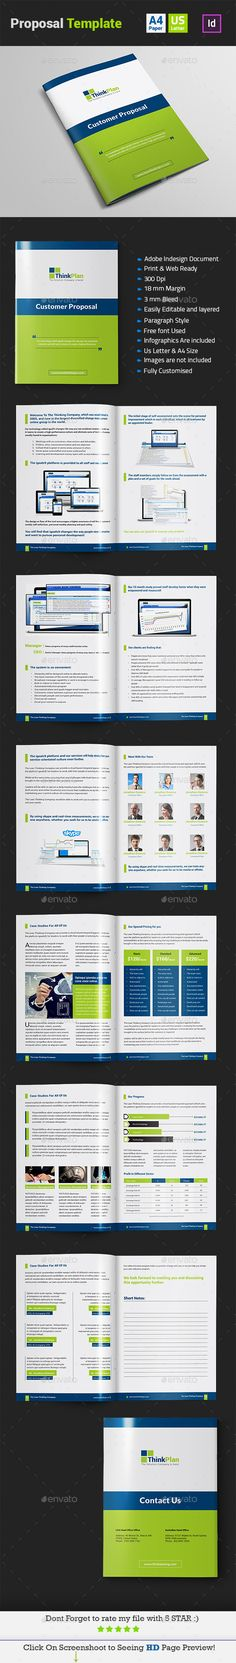 Sparrow - Creative Agency Proposal Template Proposal templates - best proposal templates